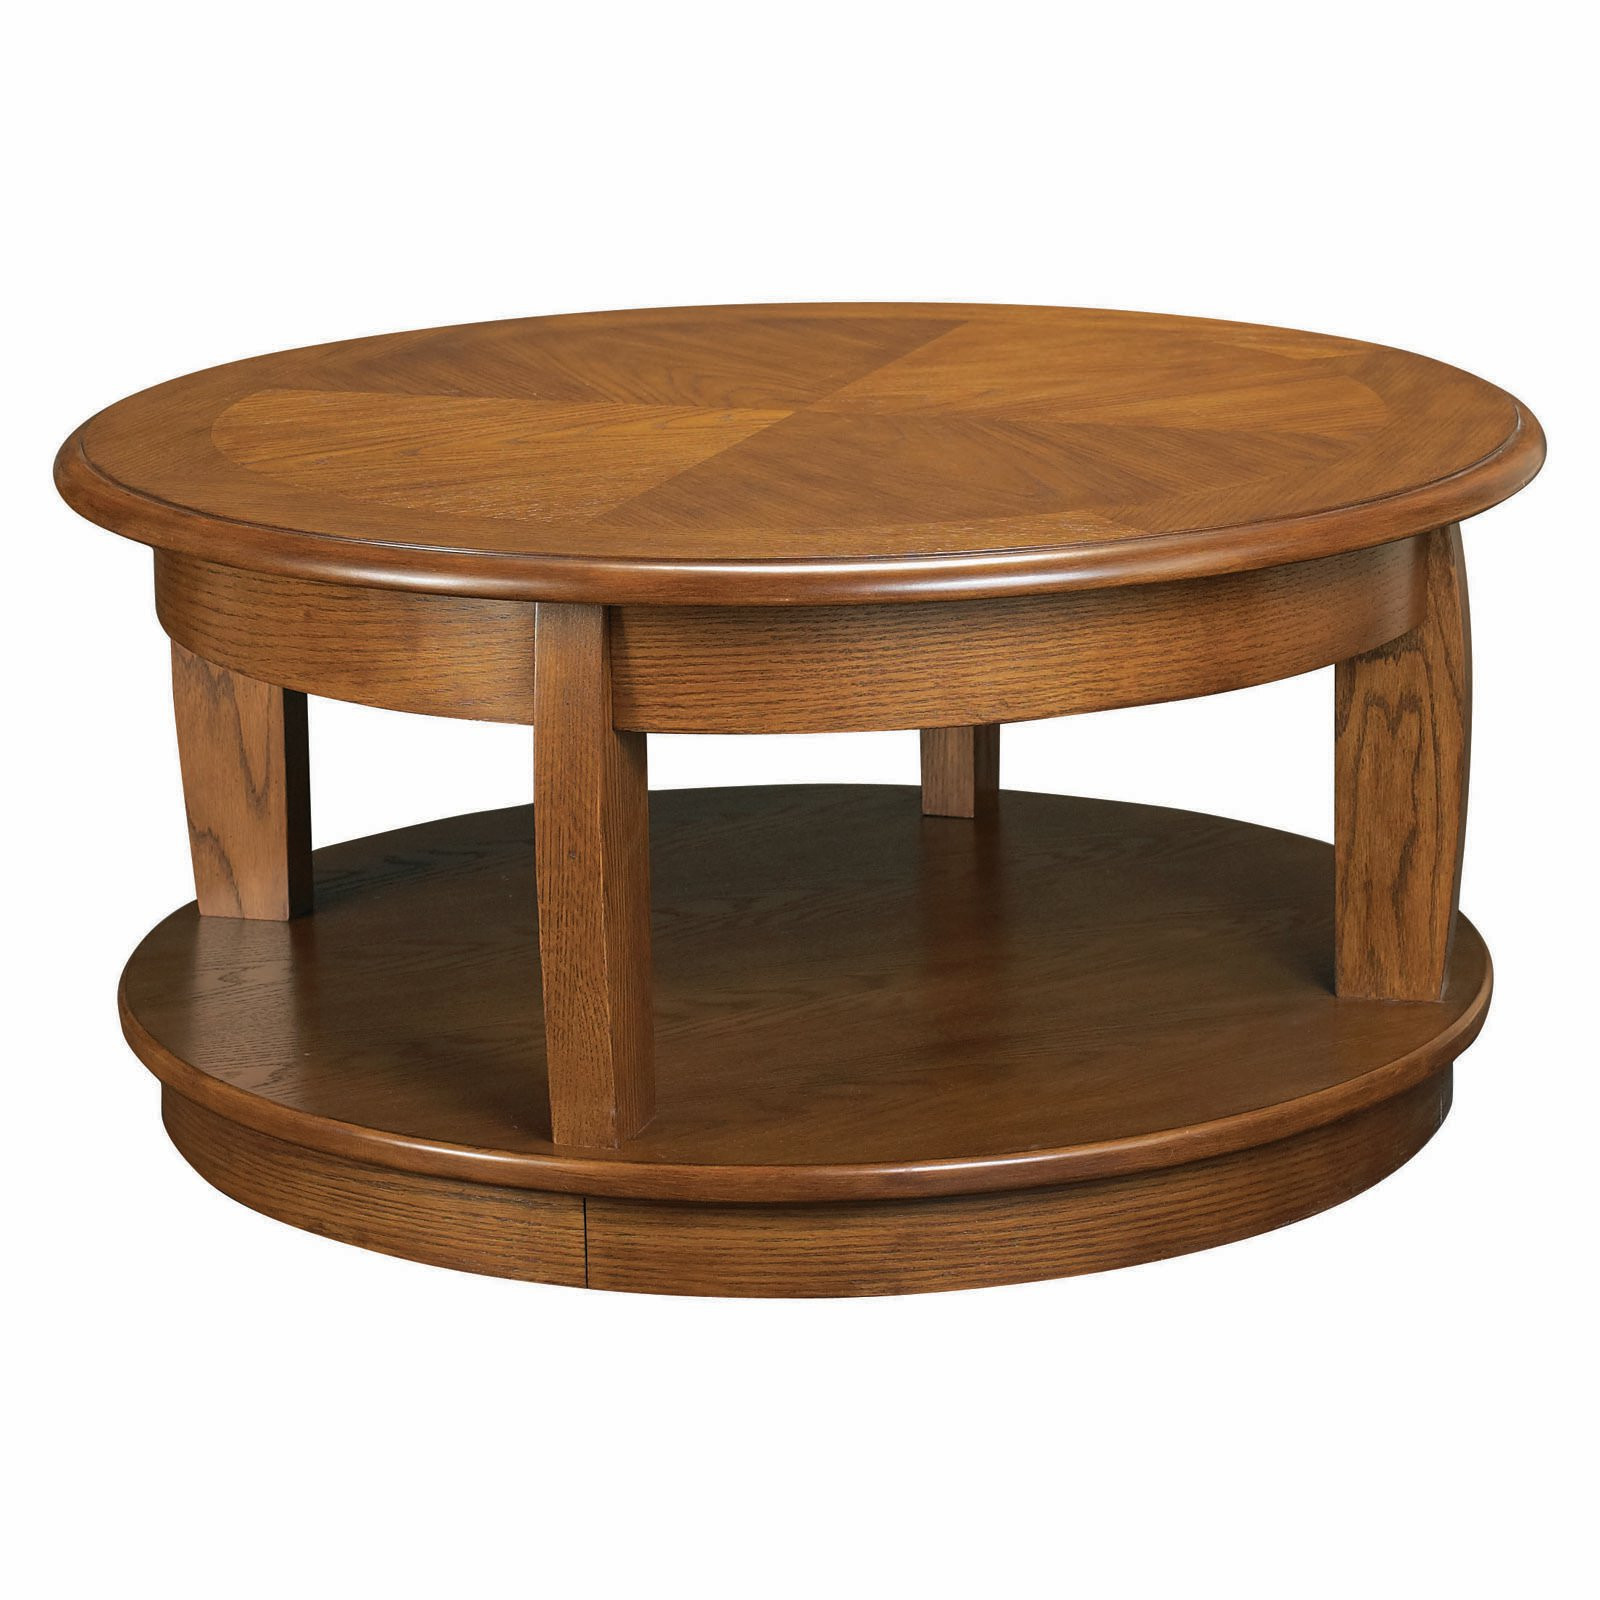 Best ideas about Round Lift Top Coffee Table . Save or Pin Hammary Ascend Round Lift Top Coffee Table Coffee Tables Now.